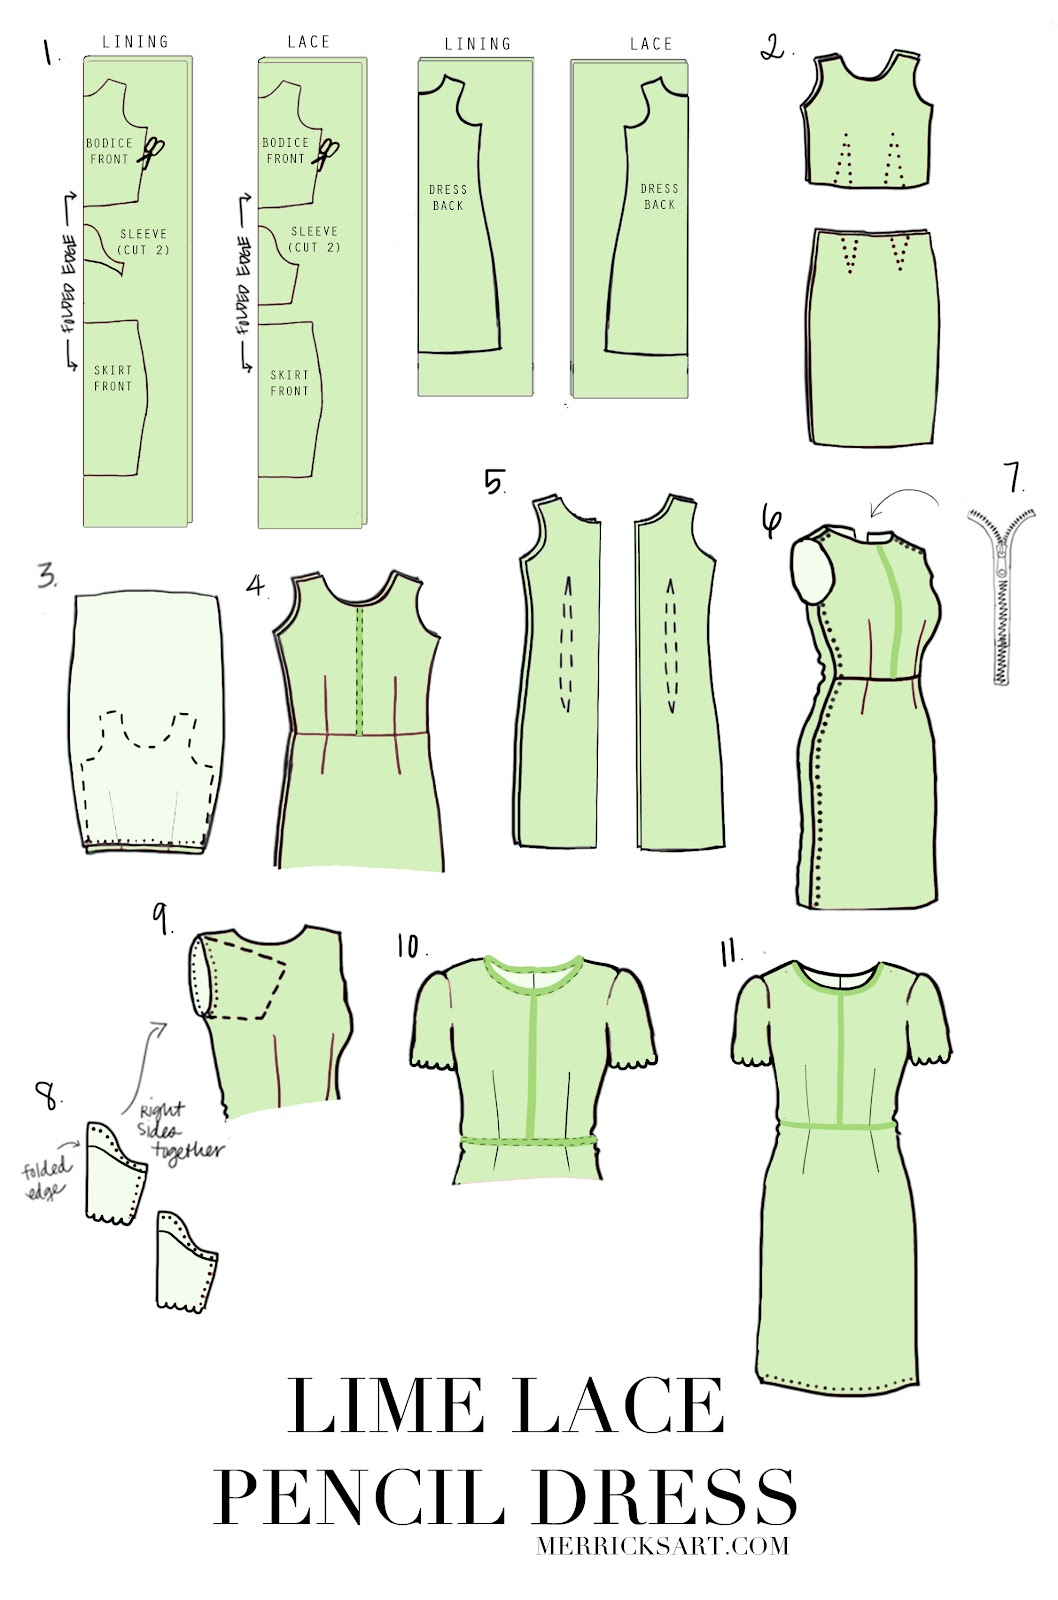 Lime Lace Easter Dress.jpg